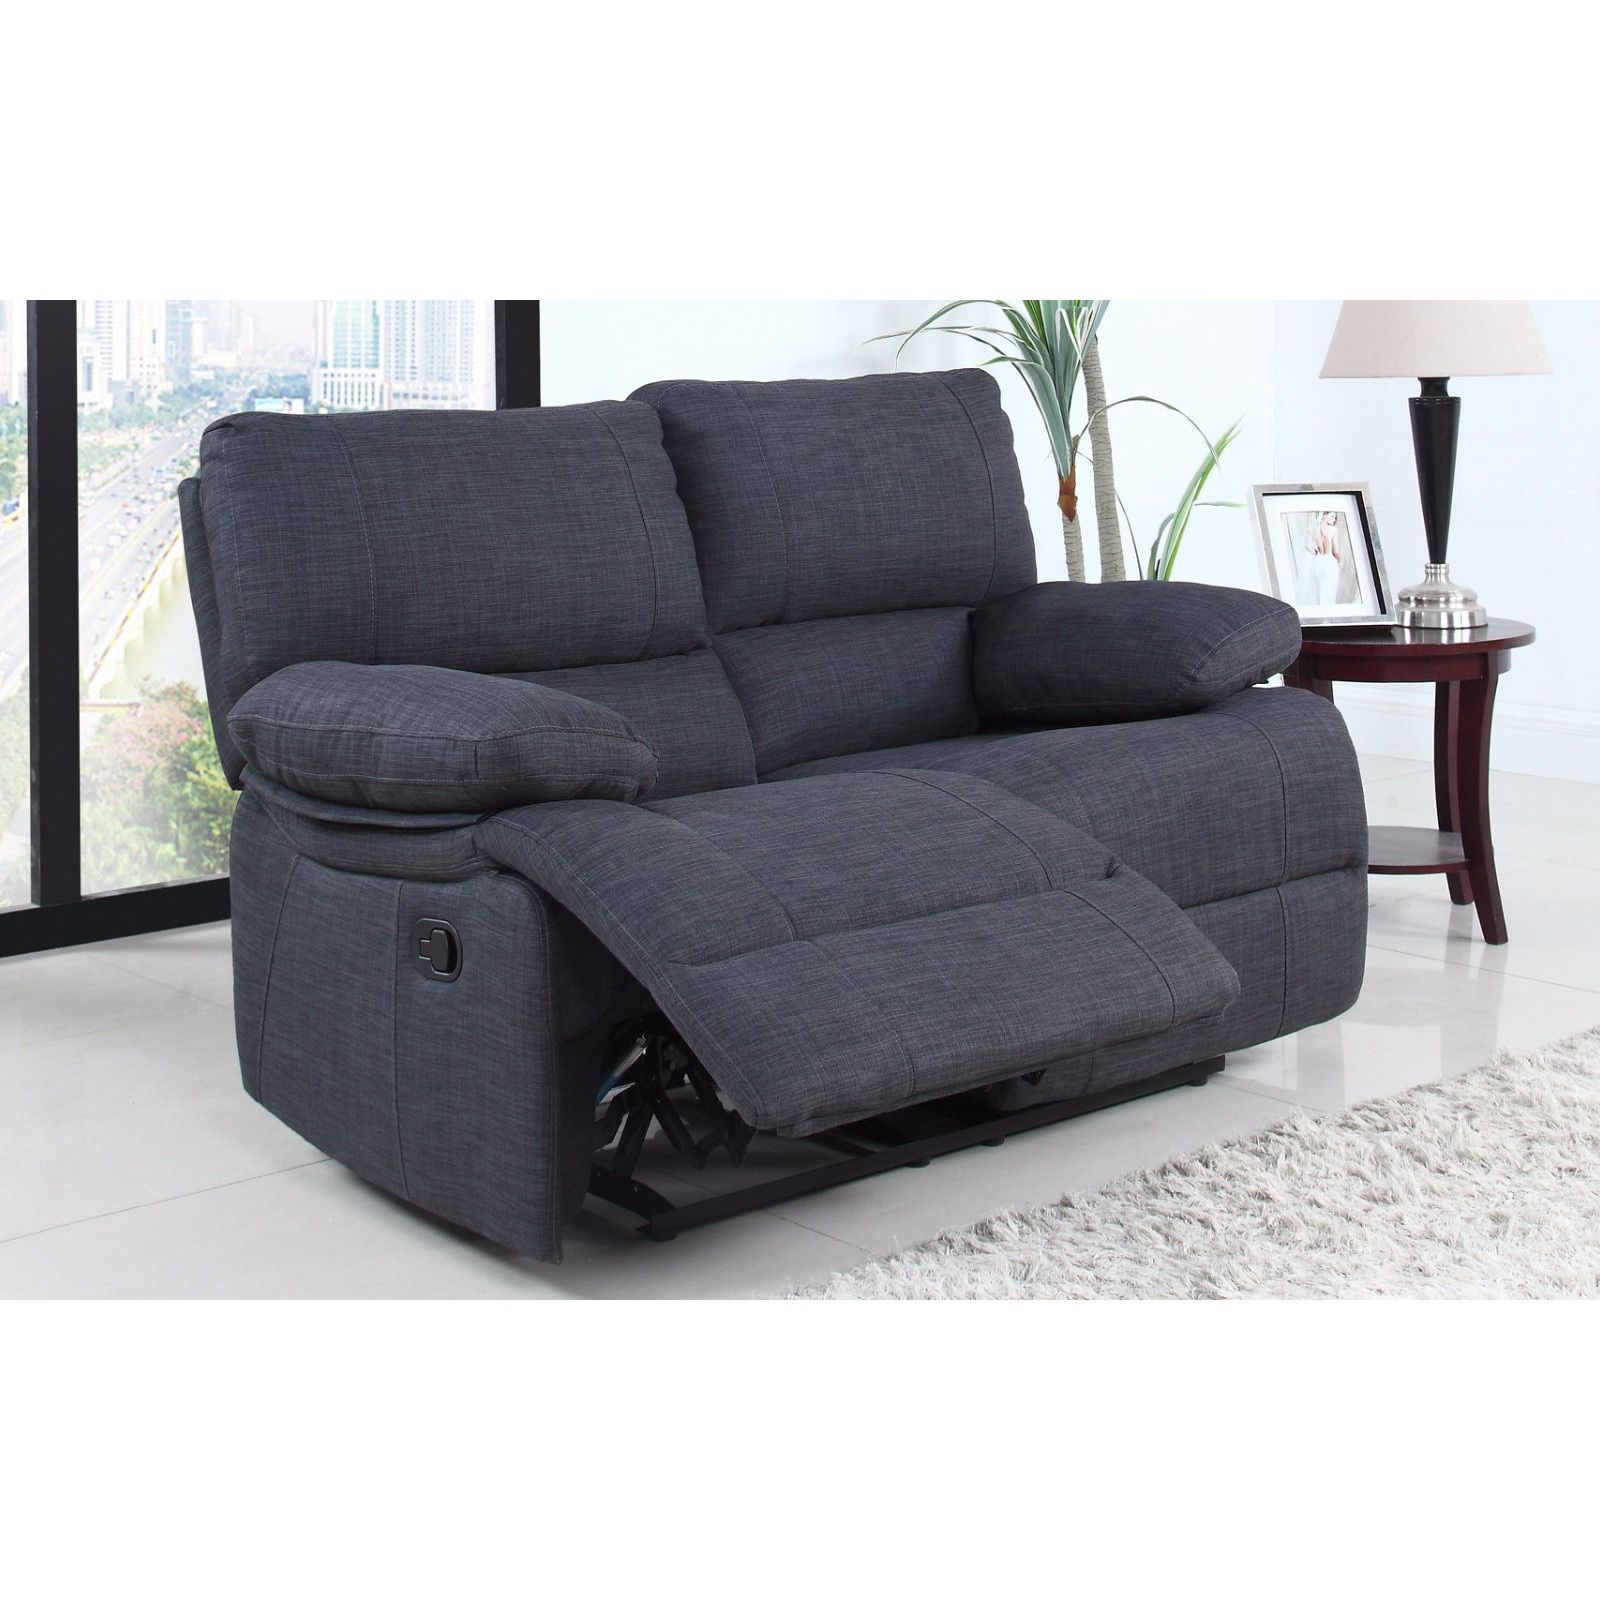 madison traditional dark oversize recliner loveseat